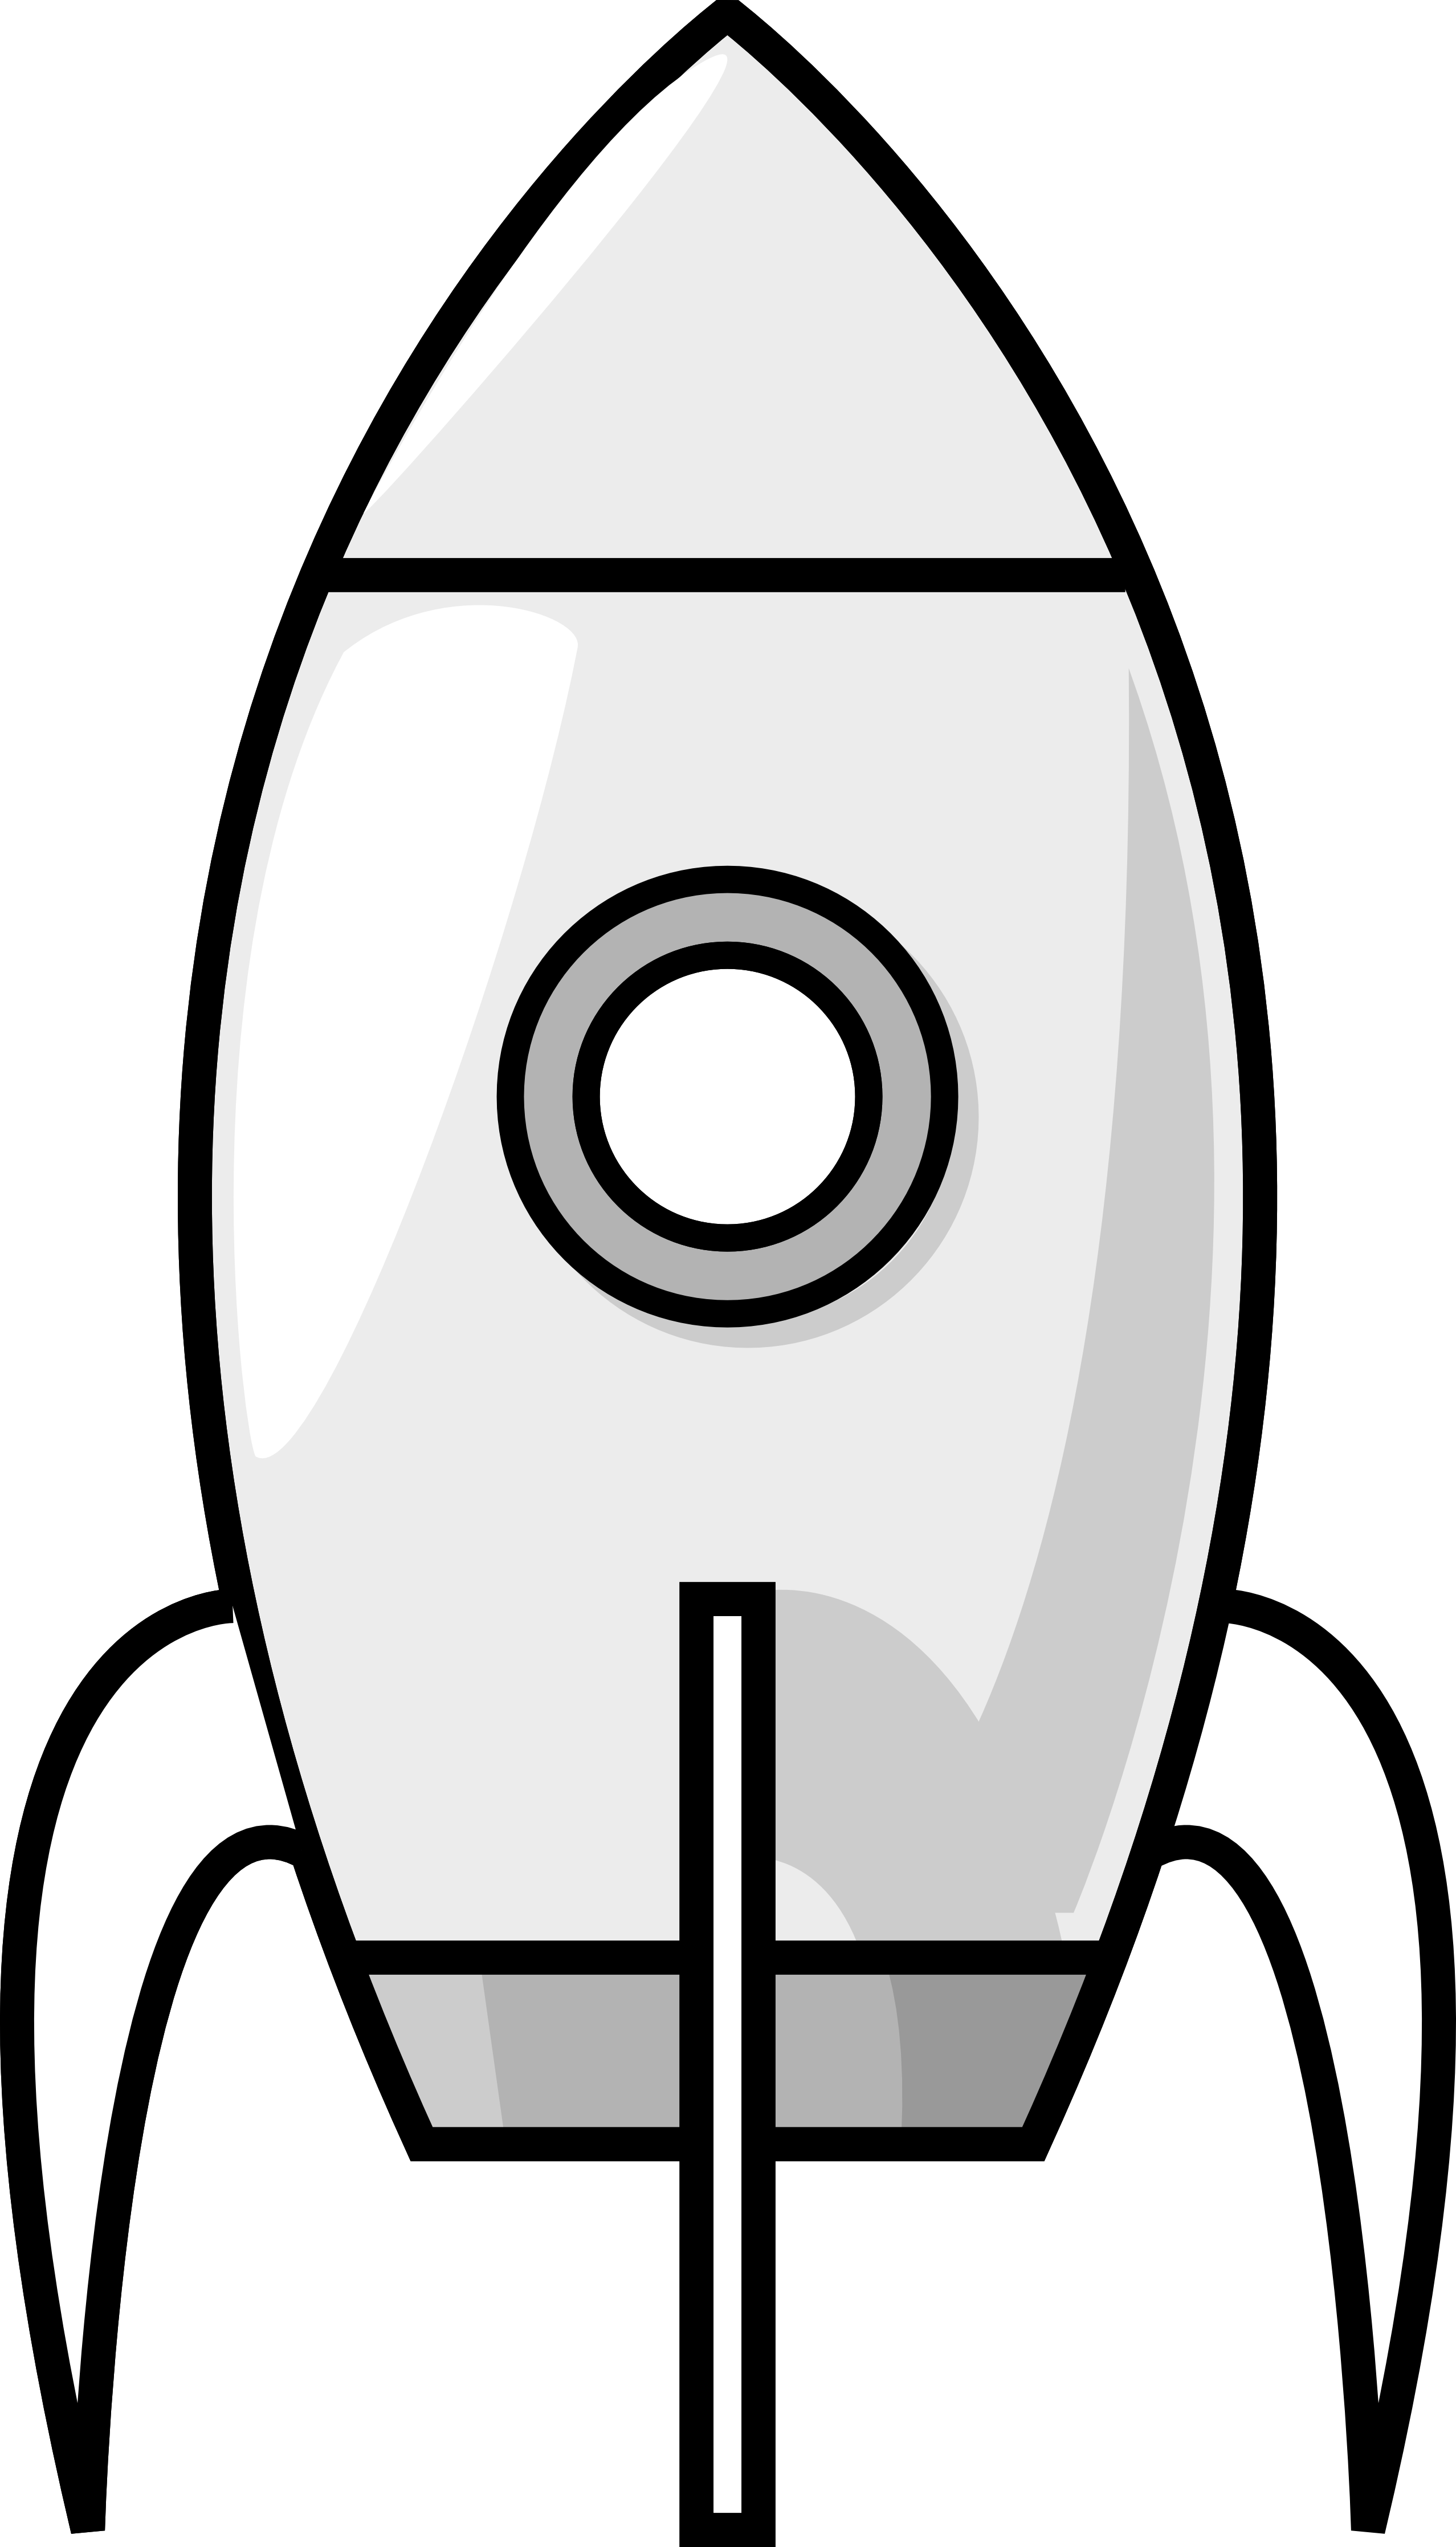 Rocket Clipart Black And White Clipart Panda Free Clipart Images.